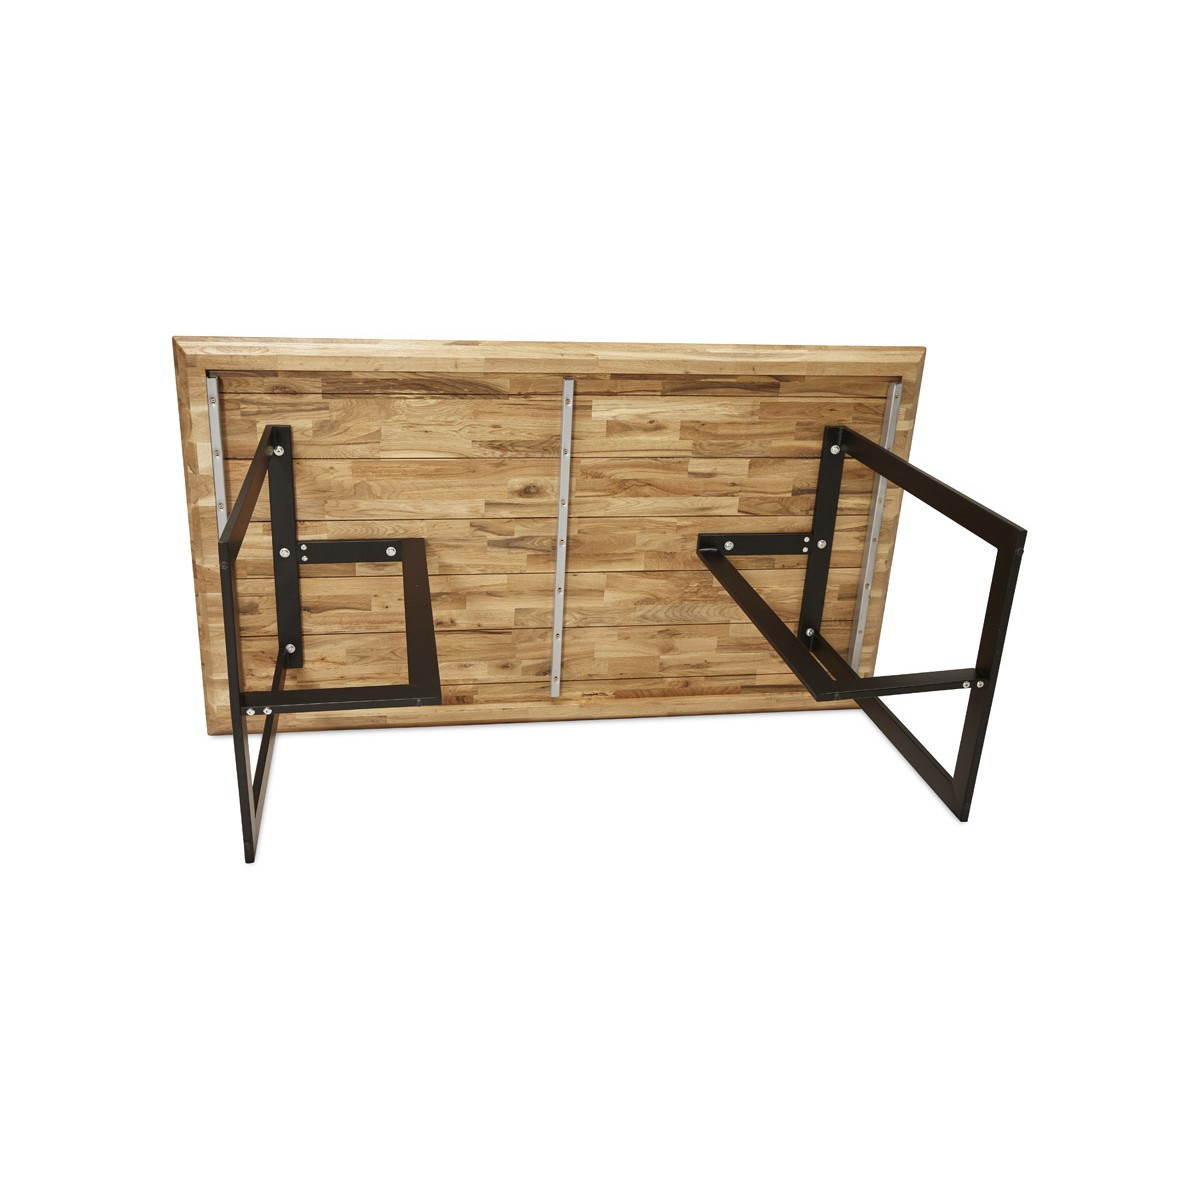 Table moderne rectangulaire nanou en ch ne bois naturel - Table bois naturel ...